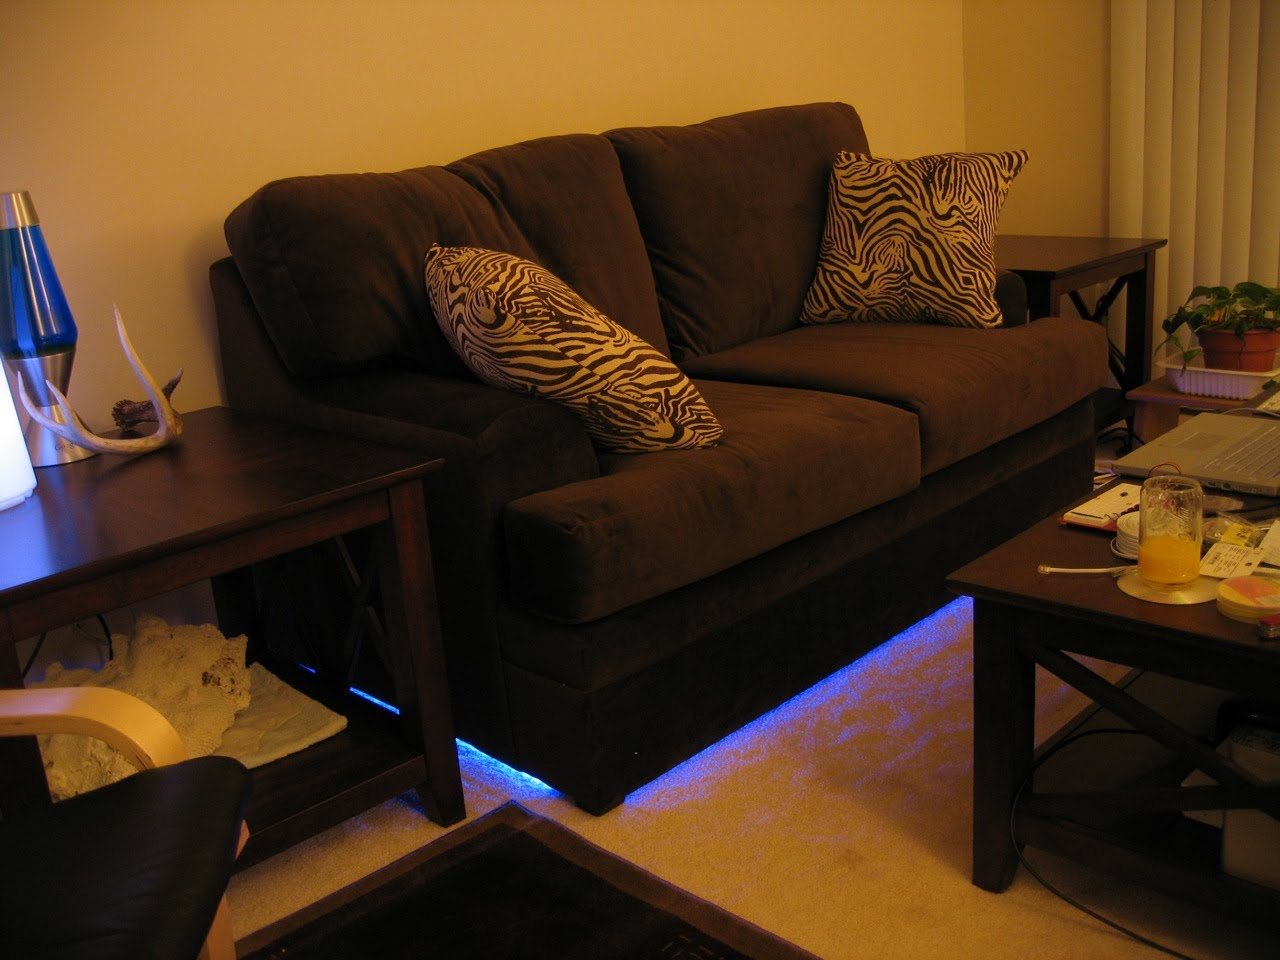 Loveseat with LED underglow